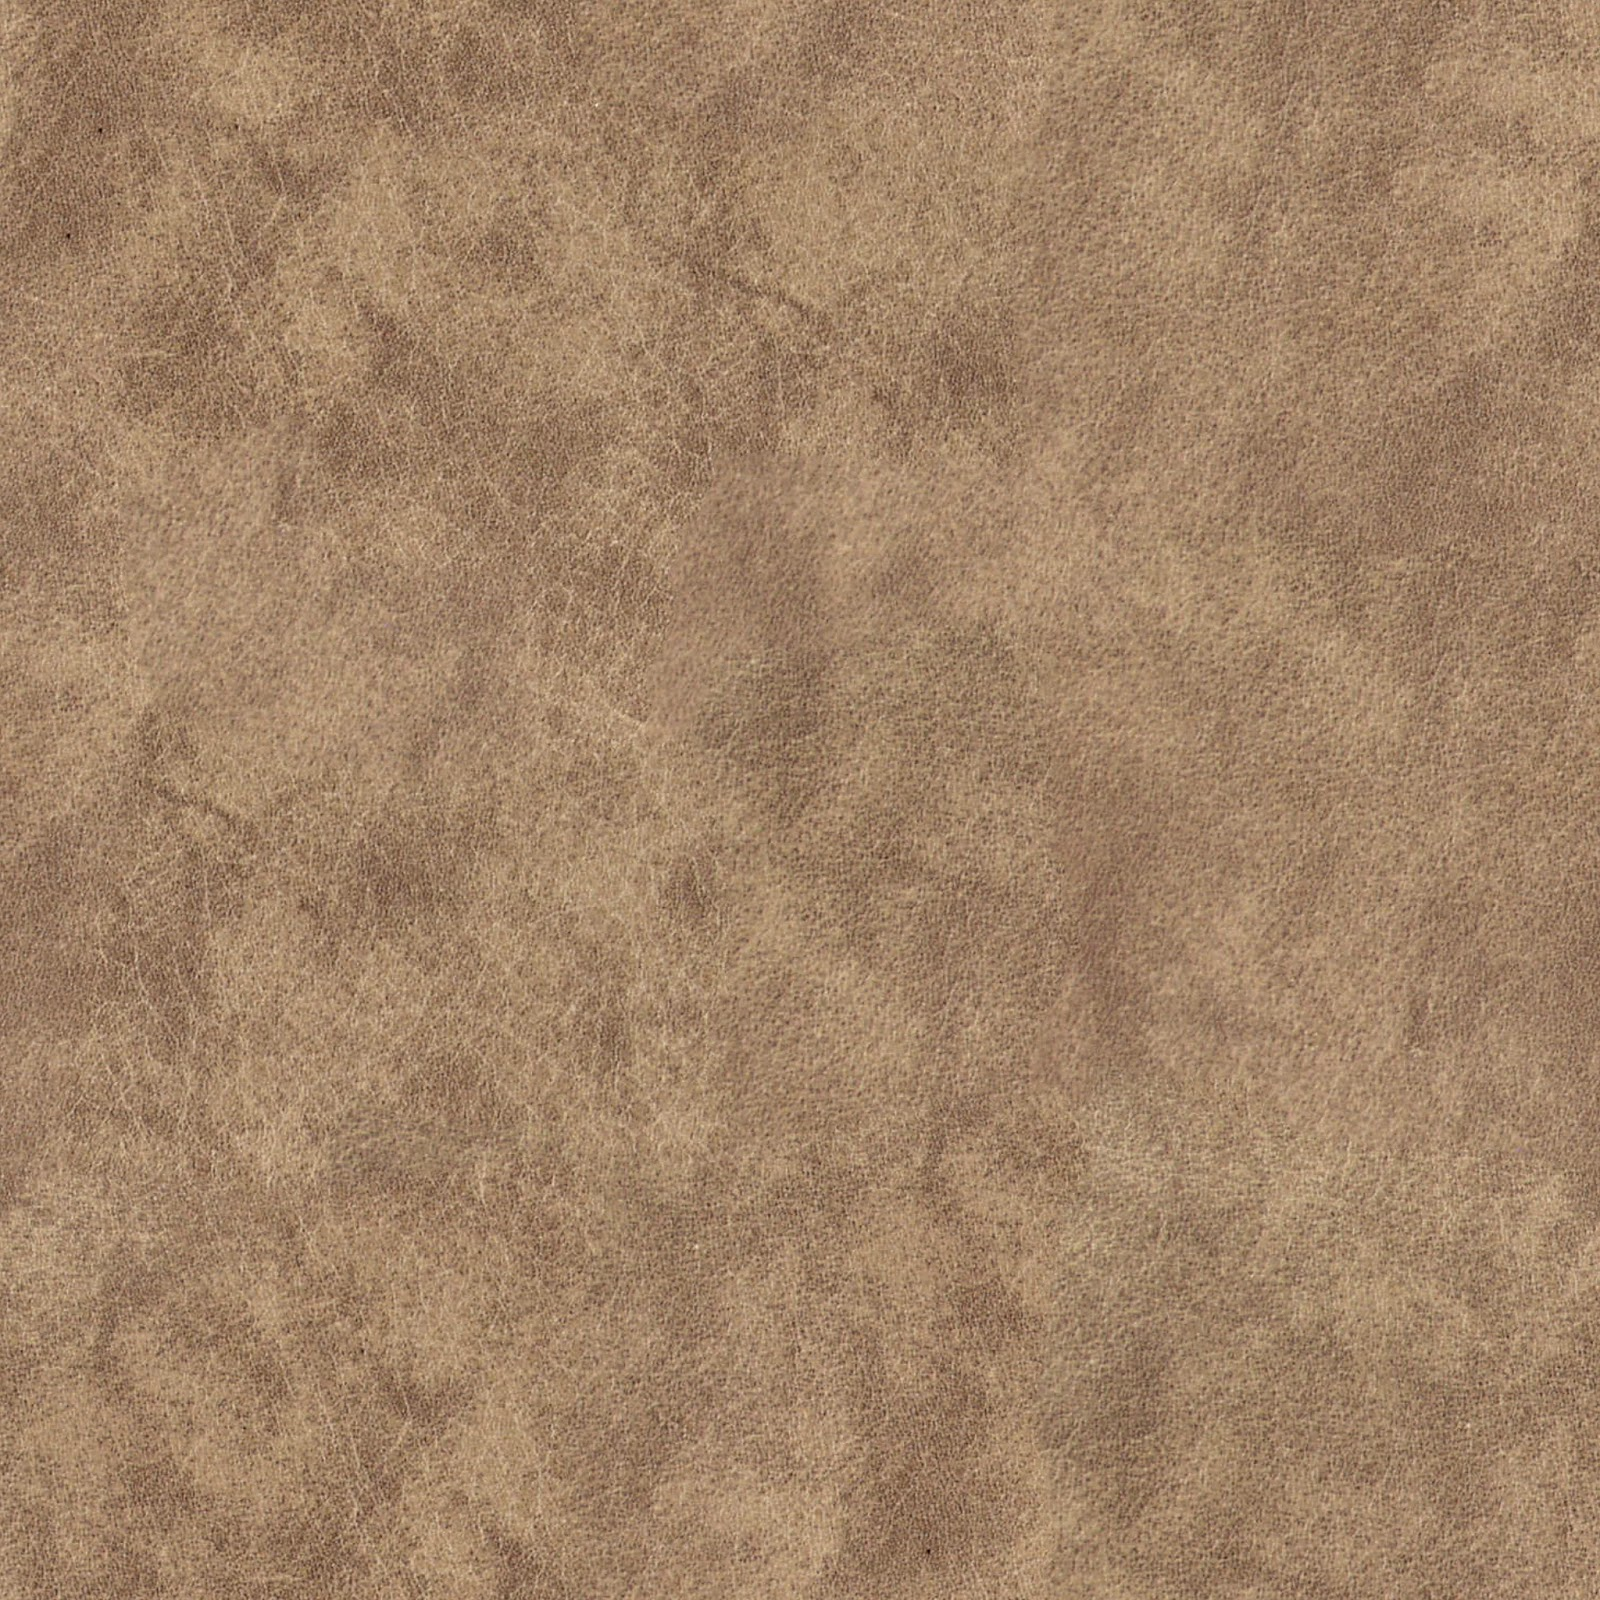 Seamless Old Brown Leather Texture Texturise Free